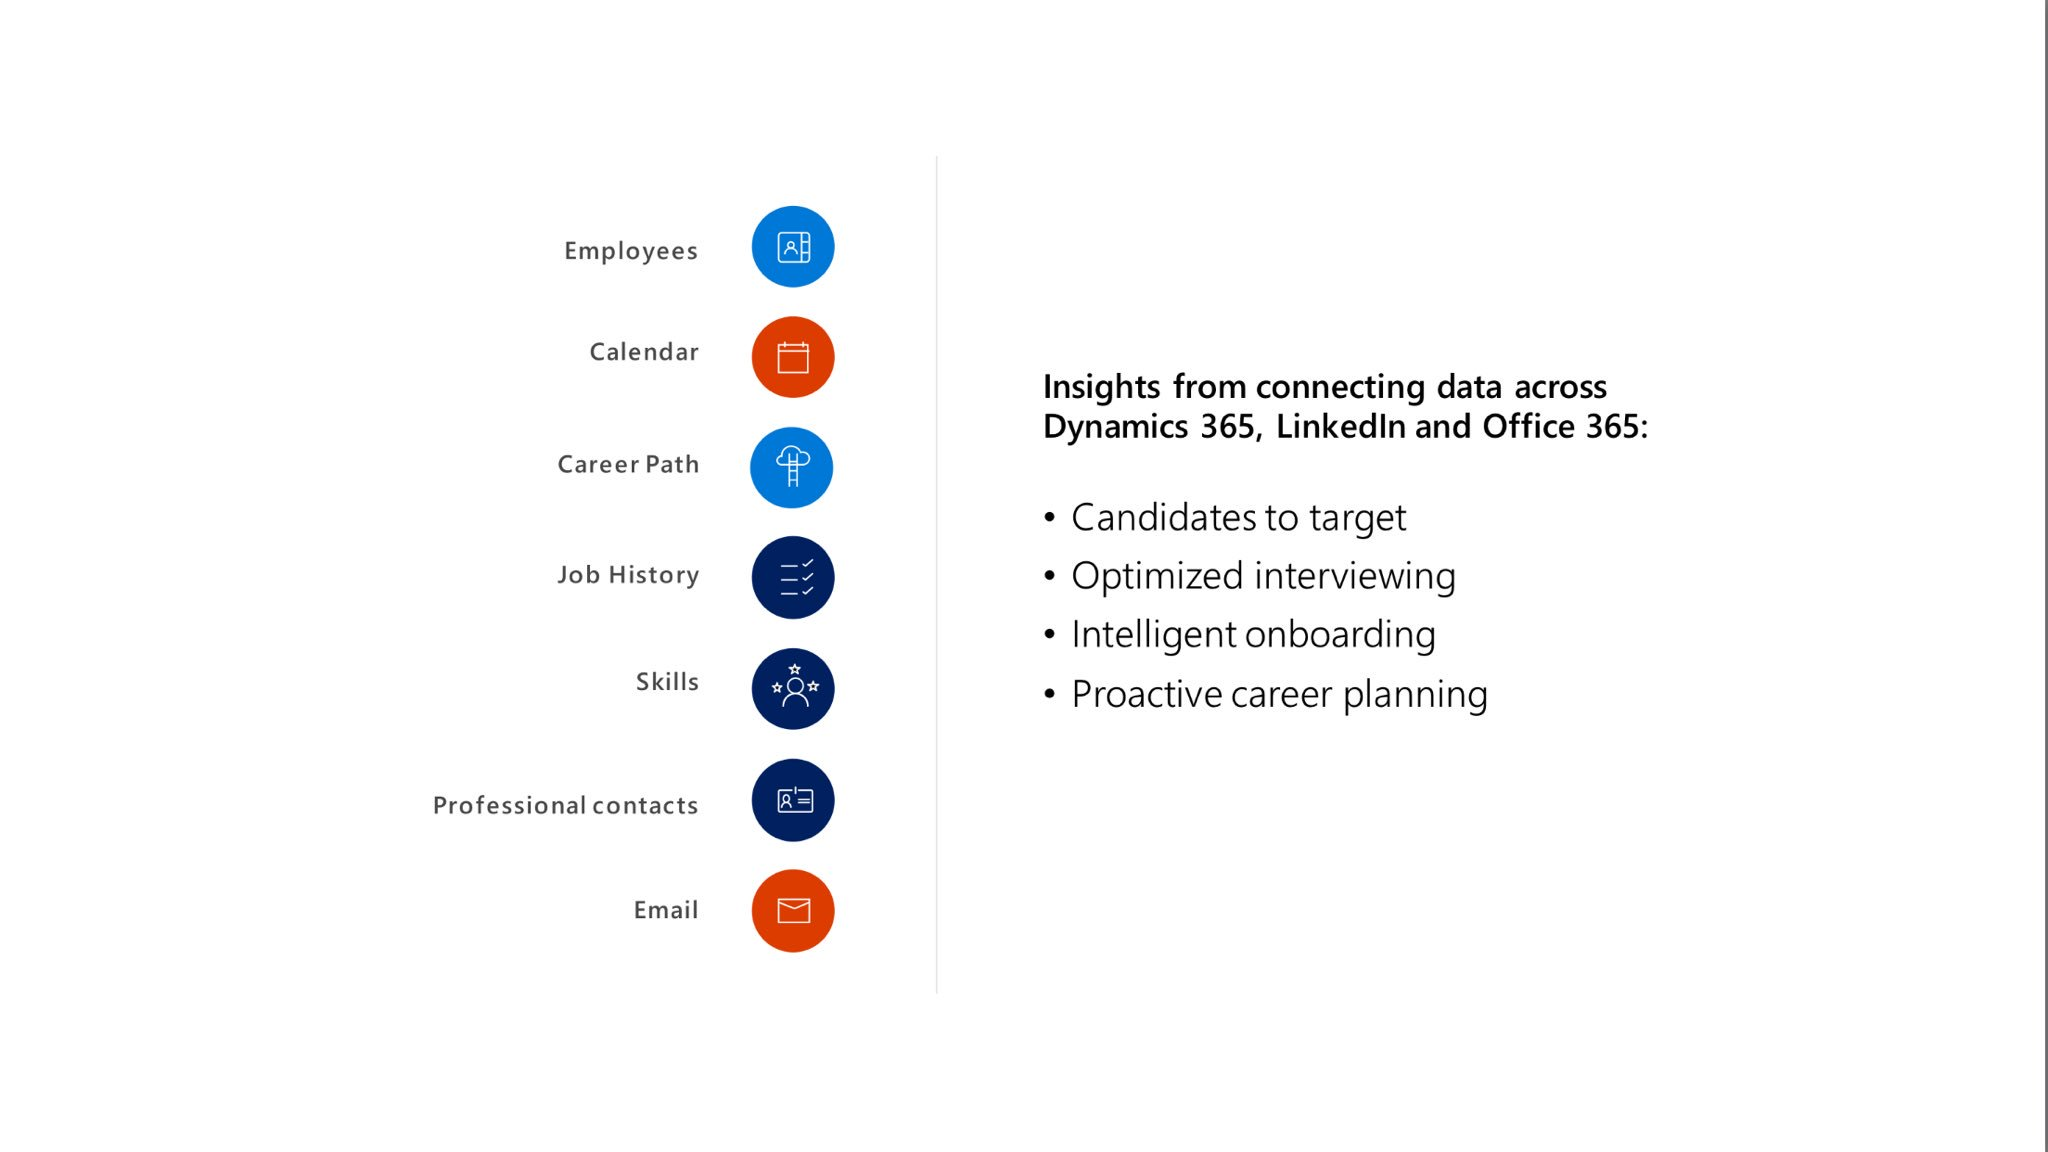 Get more insights for recruiting your talents w/ @MSFTDynamics365 #DigitalTransformation #msbusinessfwd https://t.co/EmpaMKMvN0